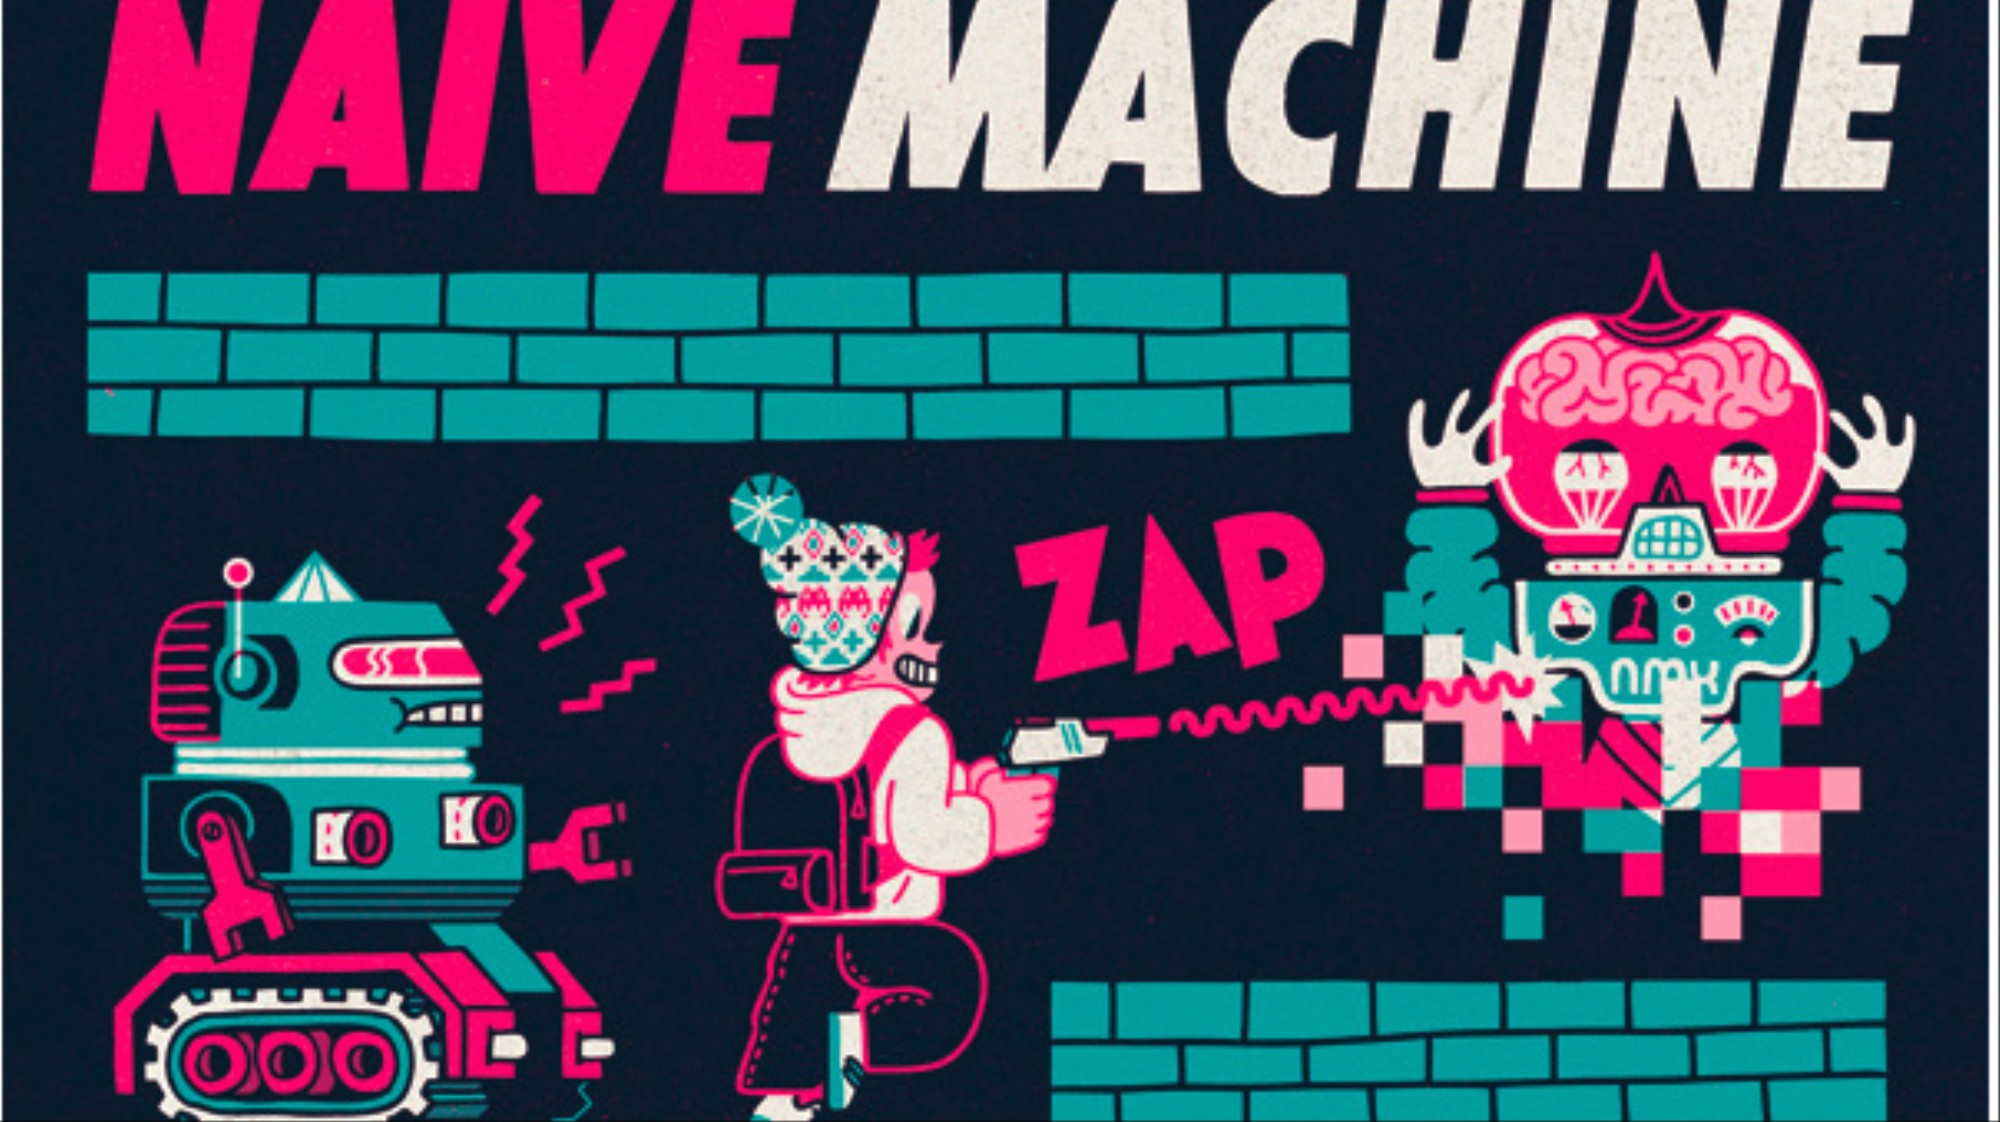 The Naïve Machine are Putting The Life Back In 8-Bit Music - VICE